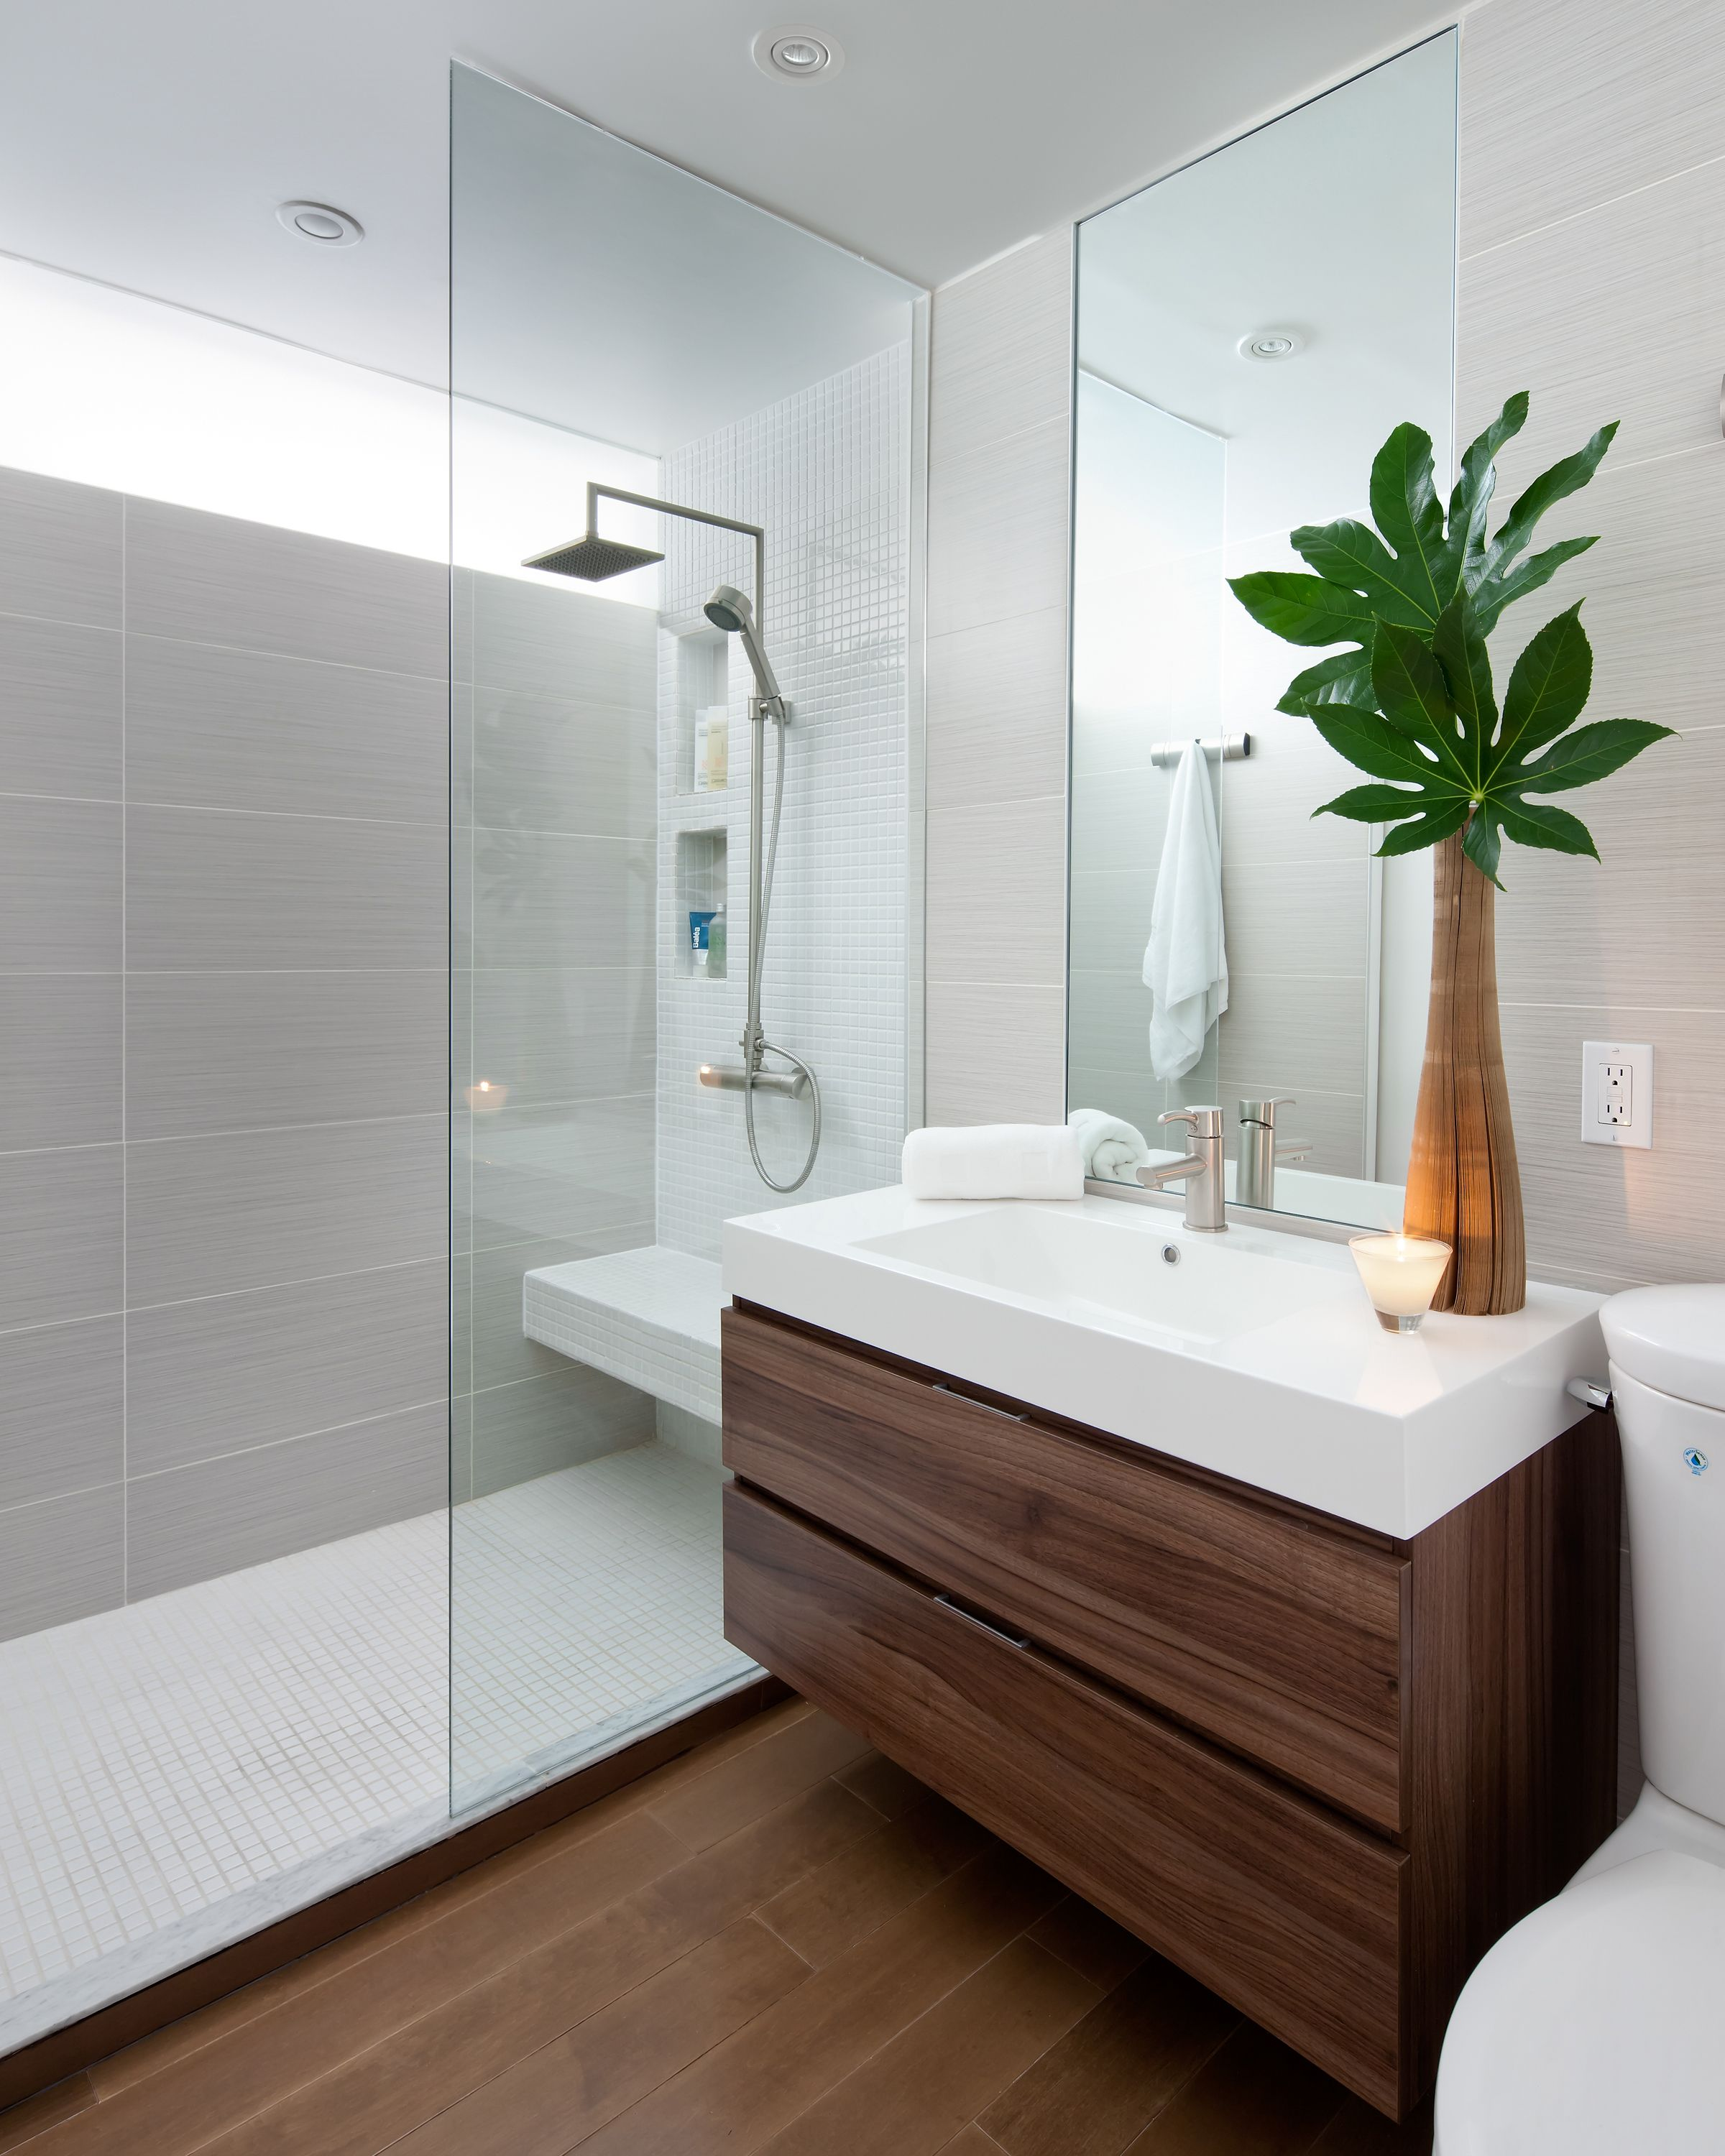 AFTER Pic Bathroom in 850 sq ft Condo | Bathrooms We Like ...